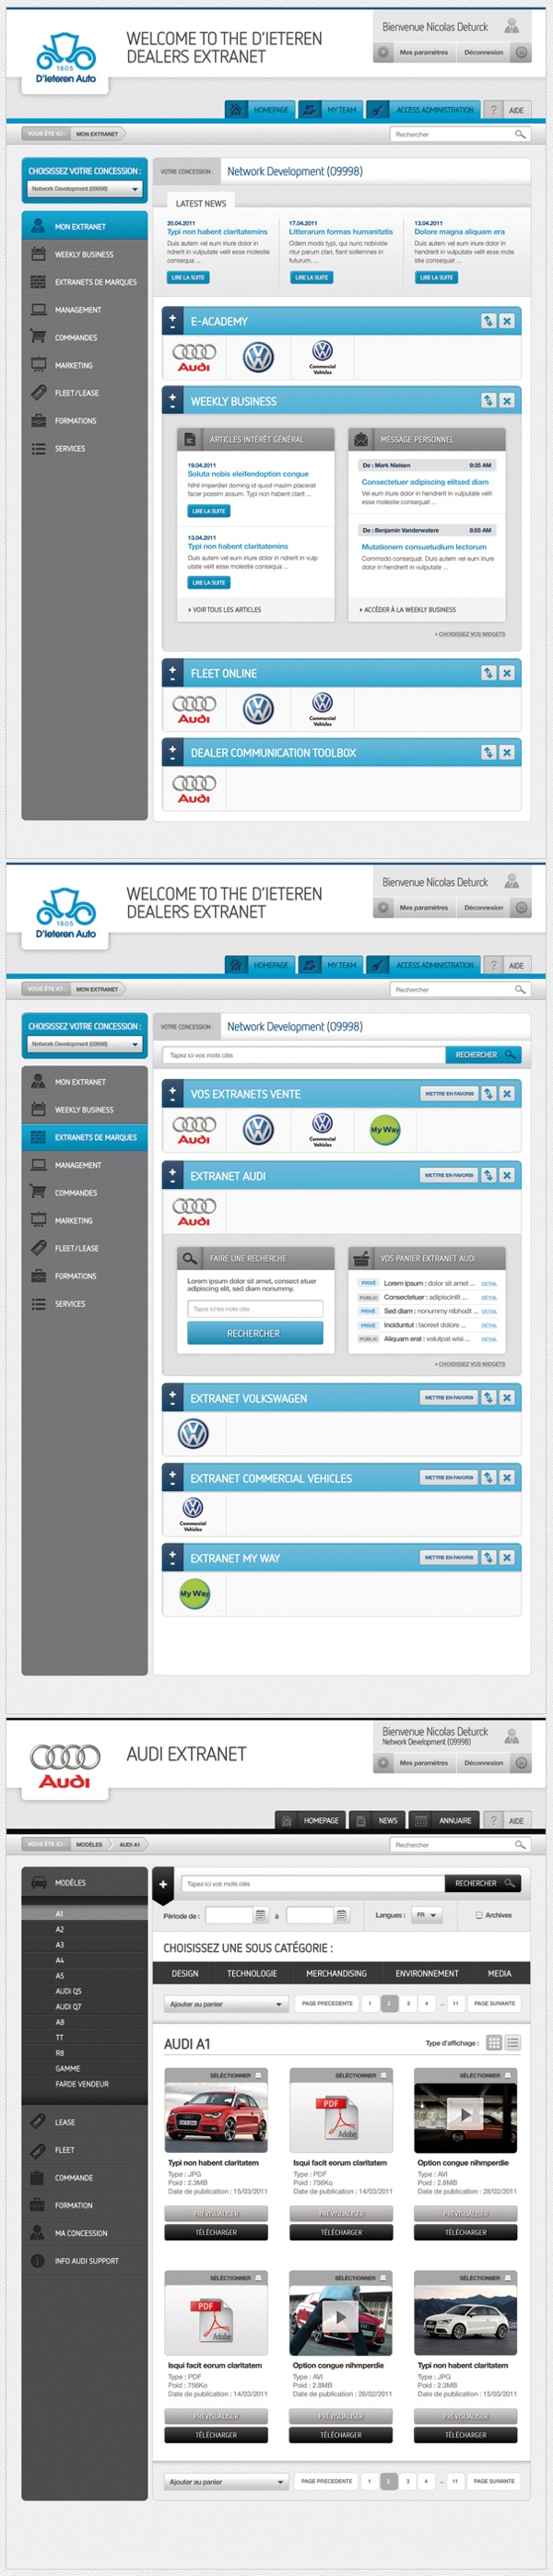 17 best ideas about sharepoint dashboard on pinterest for Sharepoint dashboard templates